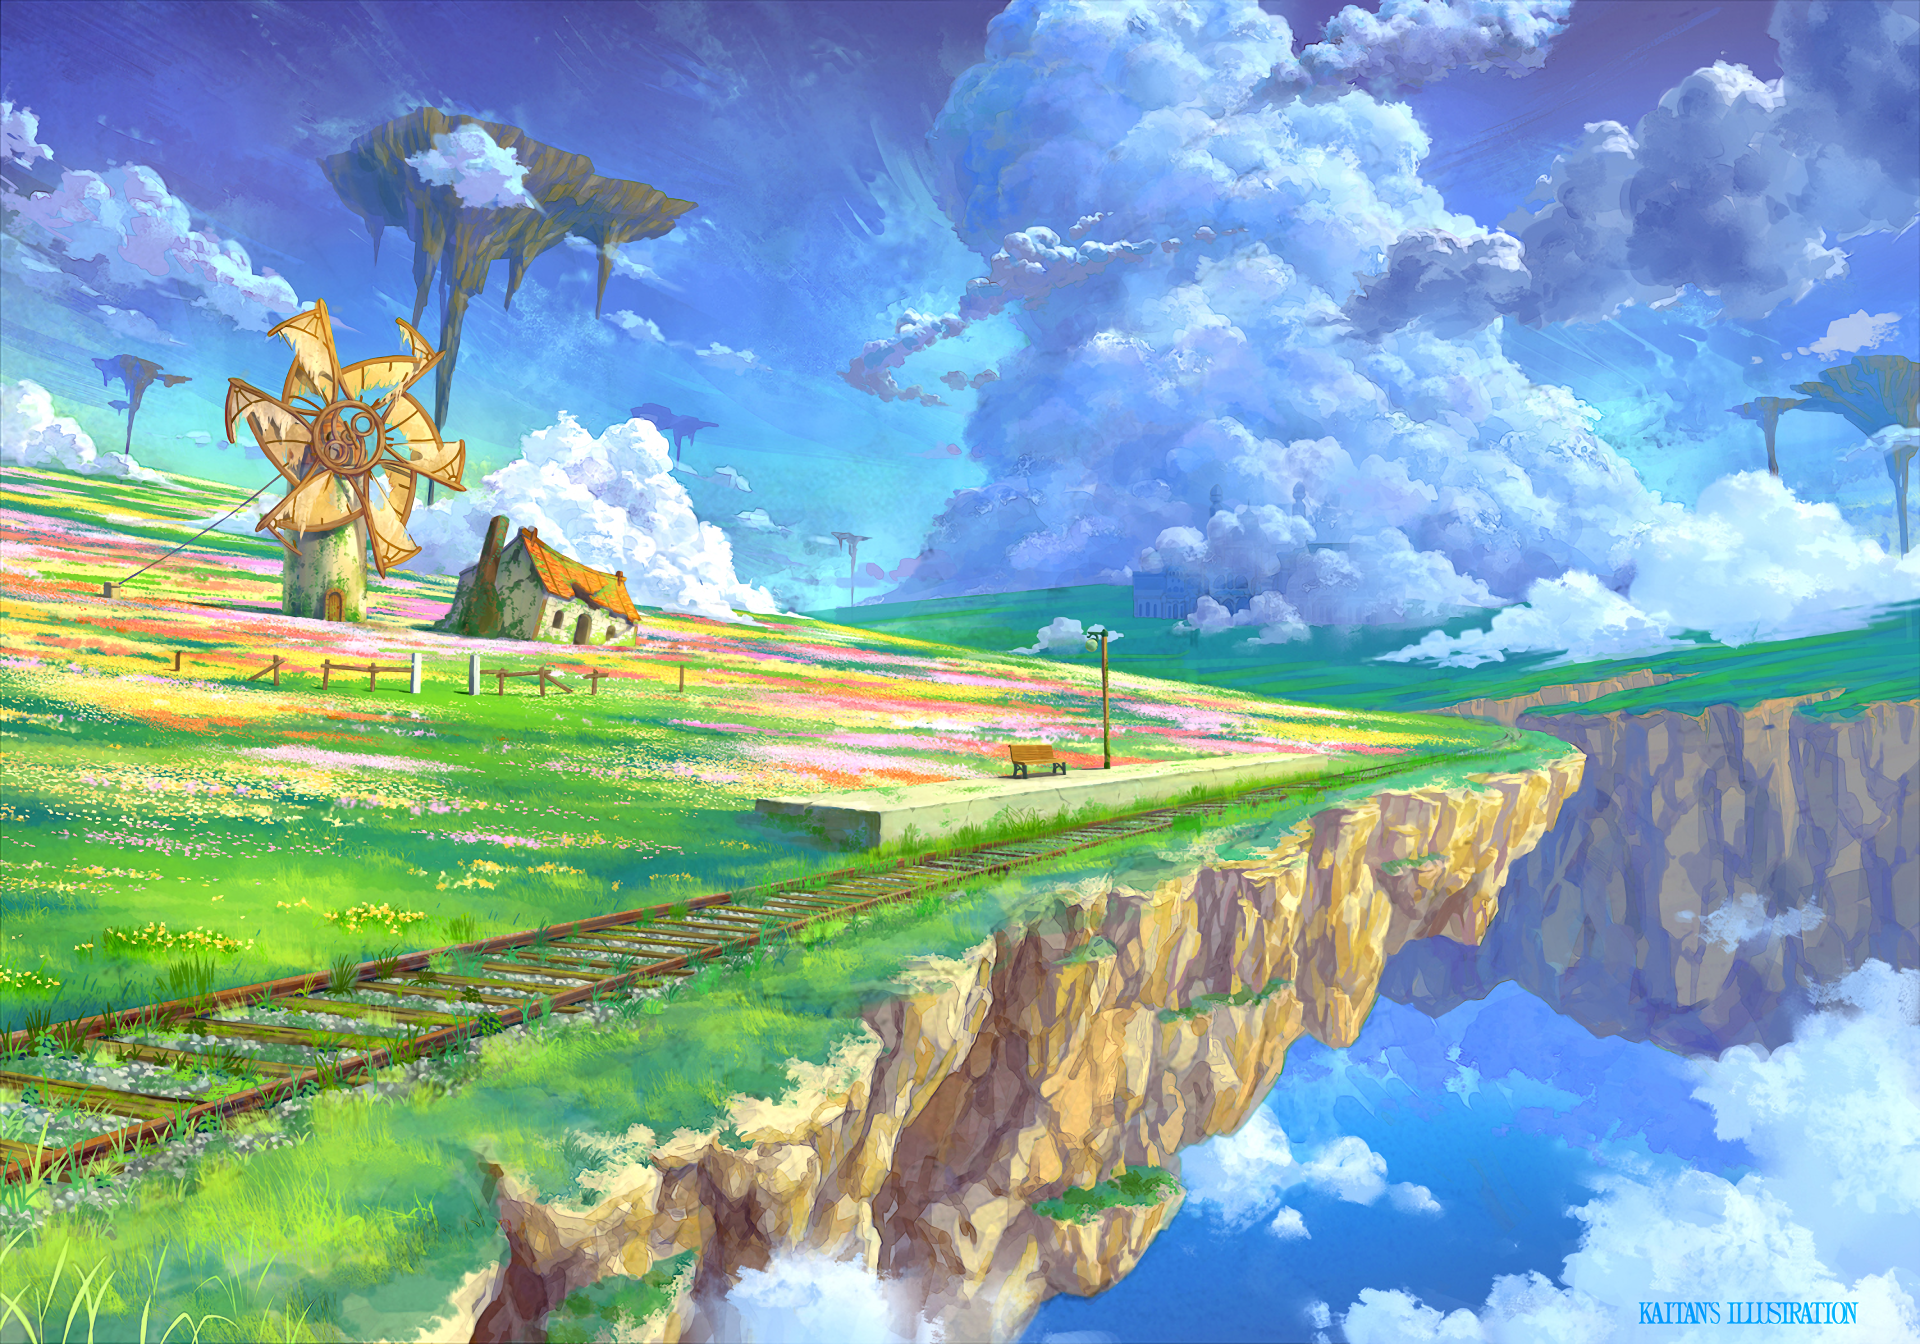 Anime - Original  Cloud Landscape Flower Scenic Sky Train Station Windmill Nature Floating Island Wallpaper